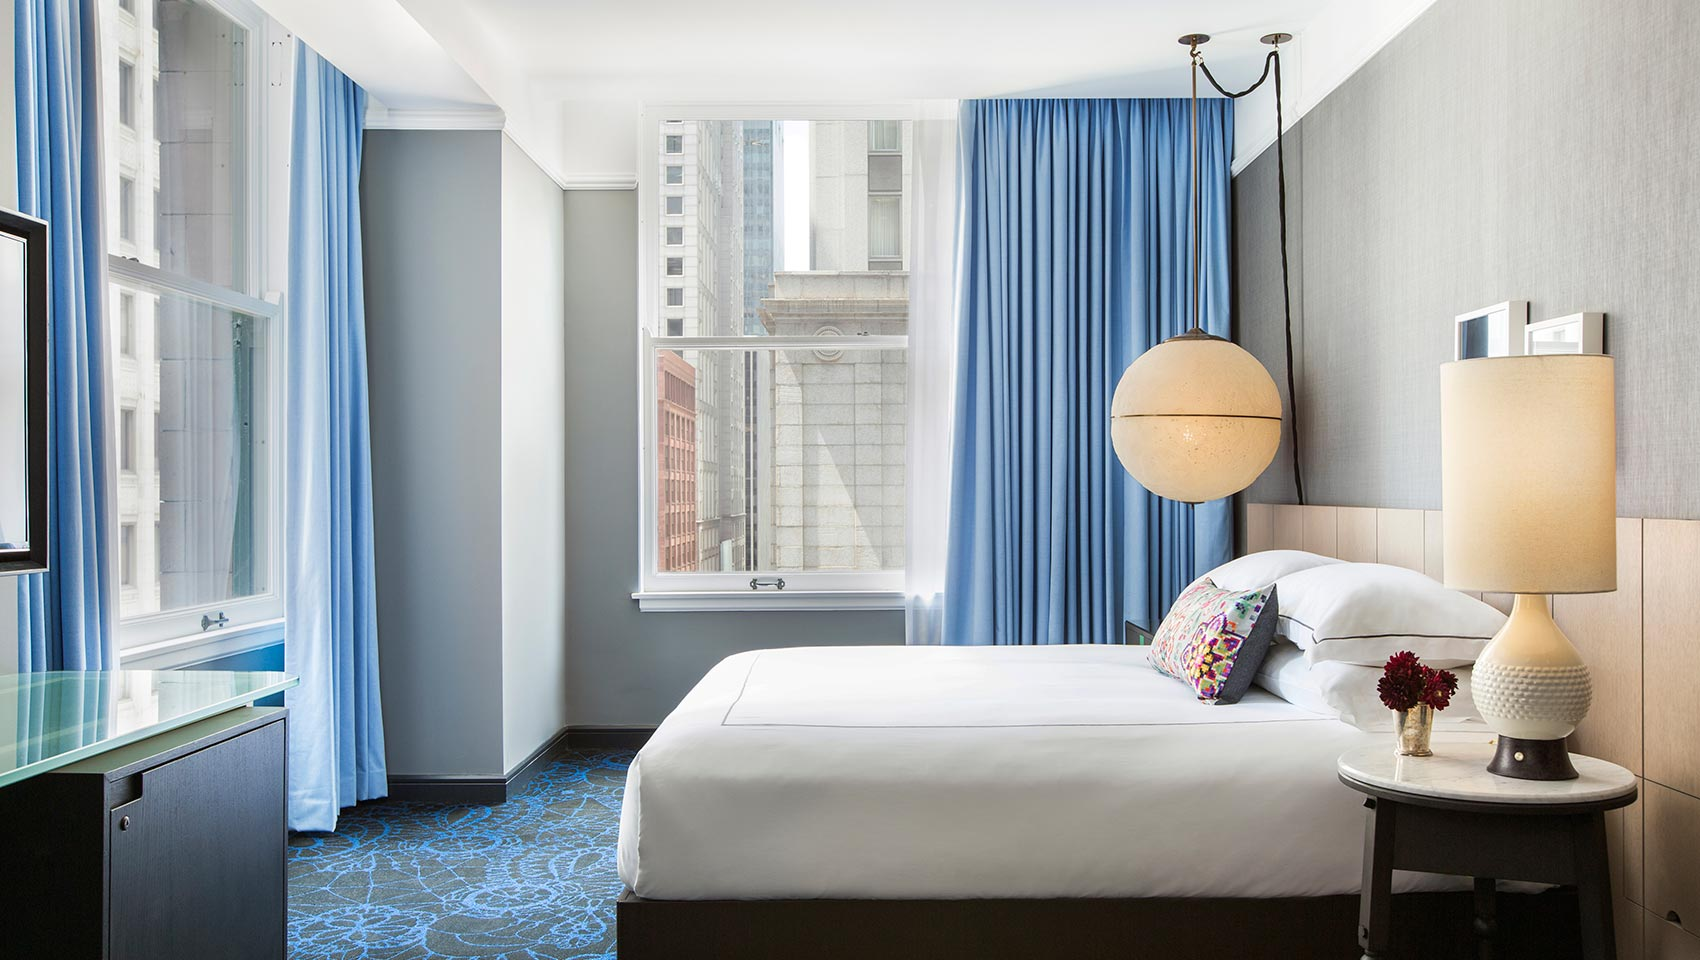 Chicago Luxury Hotel Photos Kimpton Gray Hotel